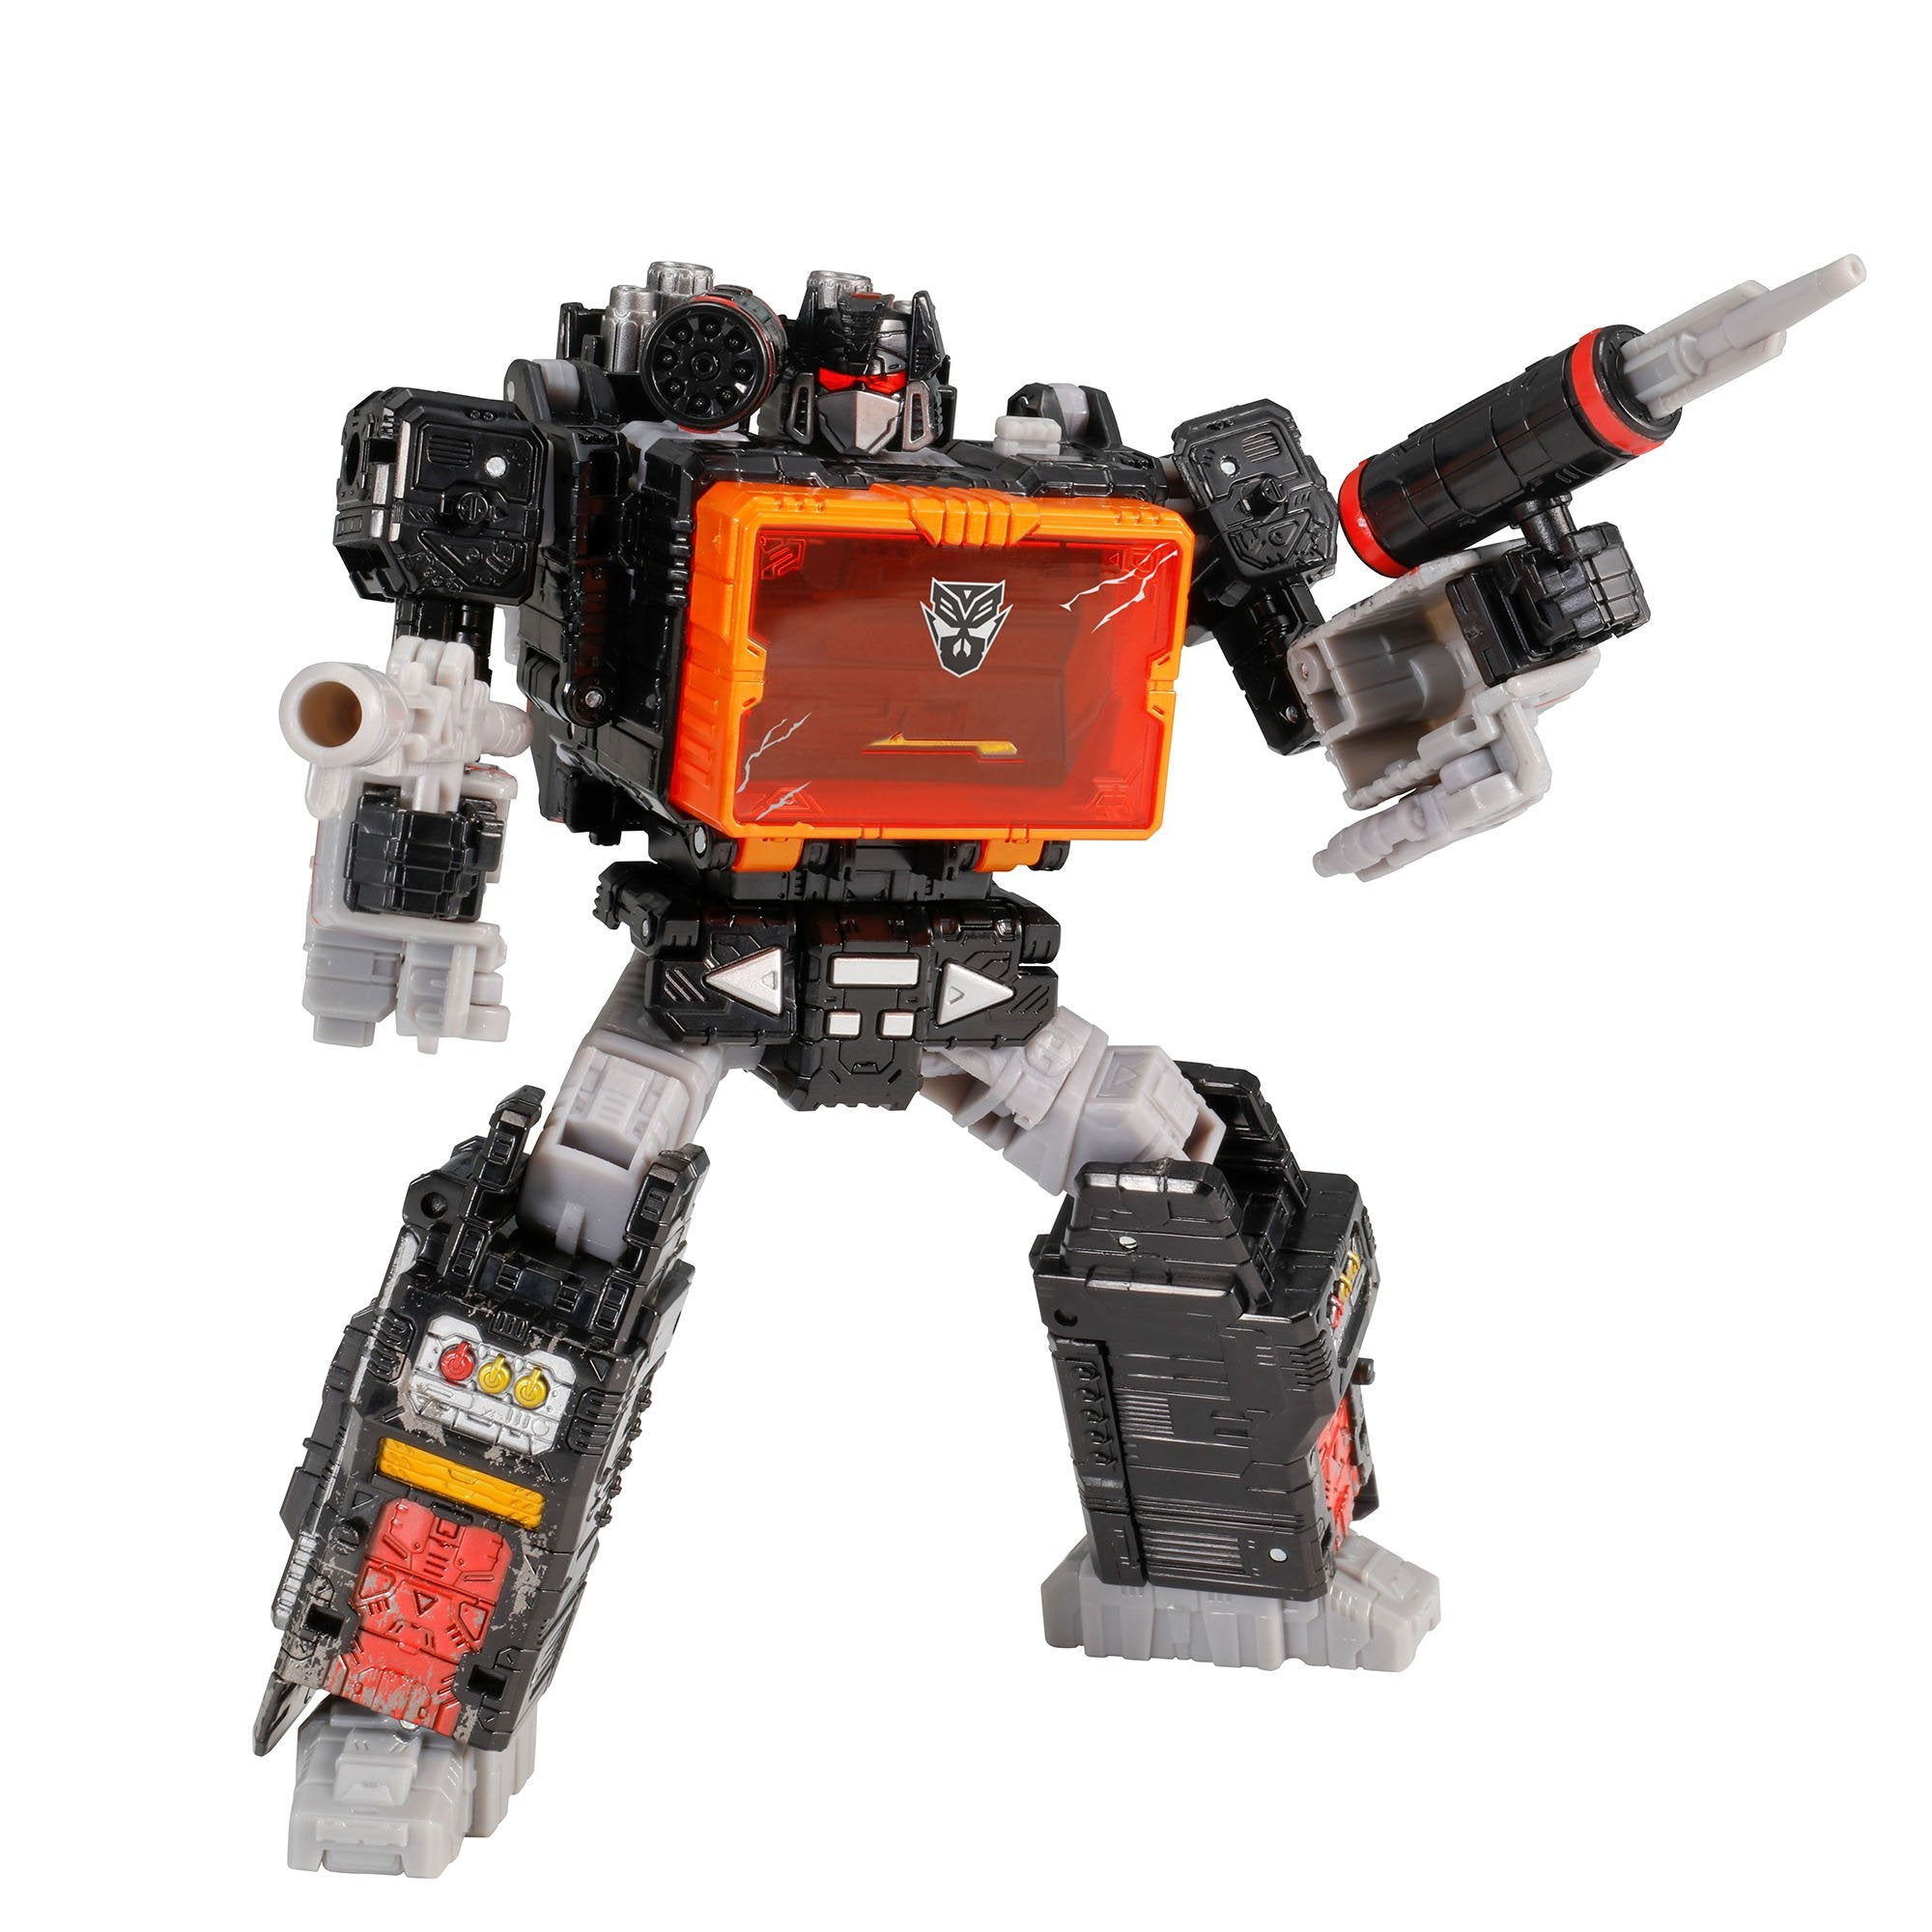 TakaraTomy - Transformers Generations - War for Cybertron: Siege EX - Soundblaster (TakaraTomy Mall Exclusive)